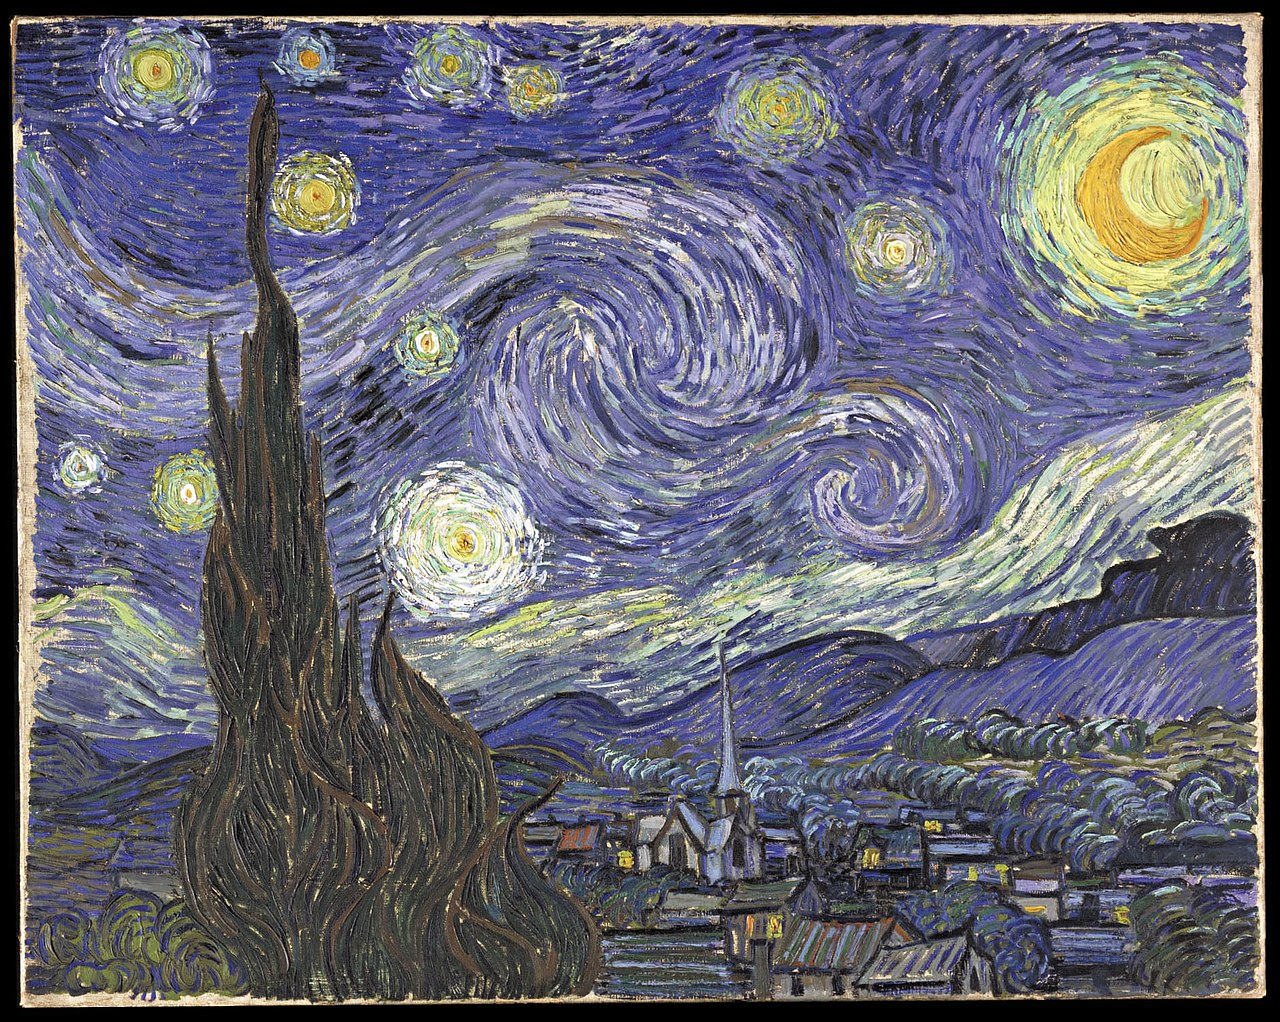 https://upload.wikimedia.org/wikipedia/commons/thumb/c/cd/VanGogh-starry_night.jpg/1280px-VanGogh-starry_night.jpg